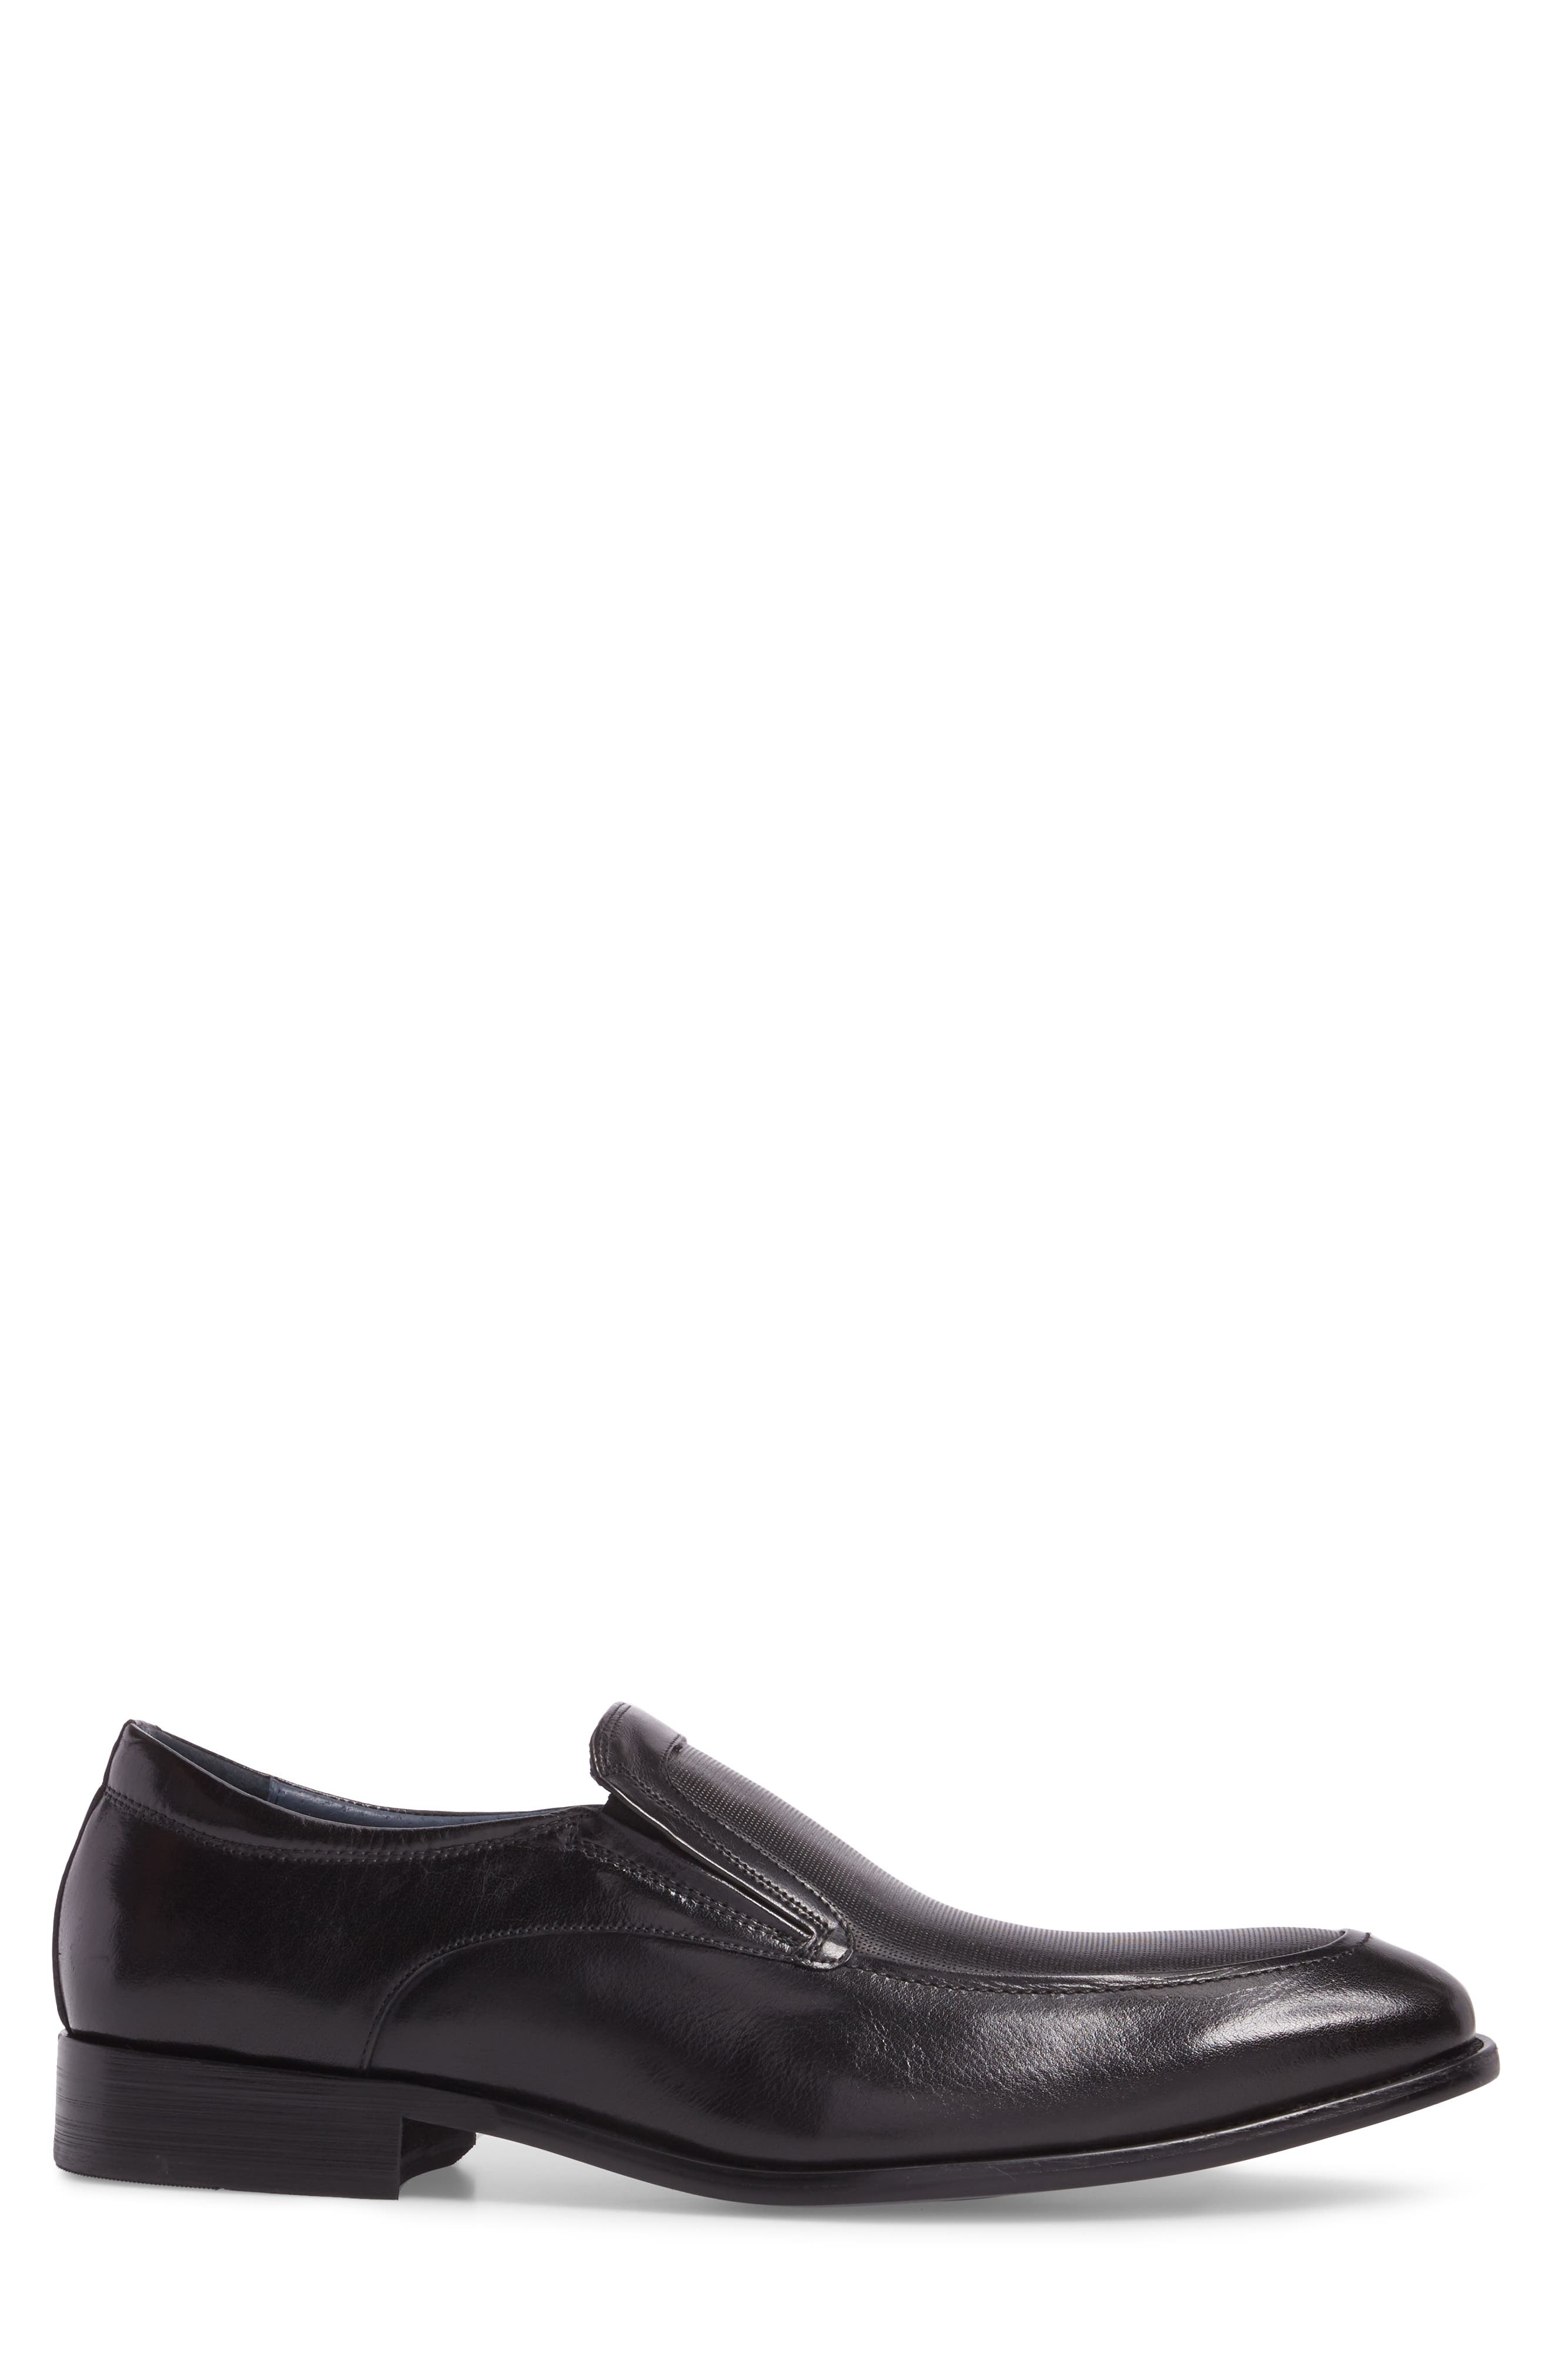 Alternate Image 3  - Stacy Adams Jace Embossed Apron Toe Loafer (Men)